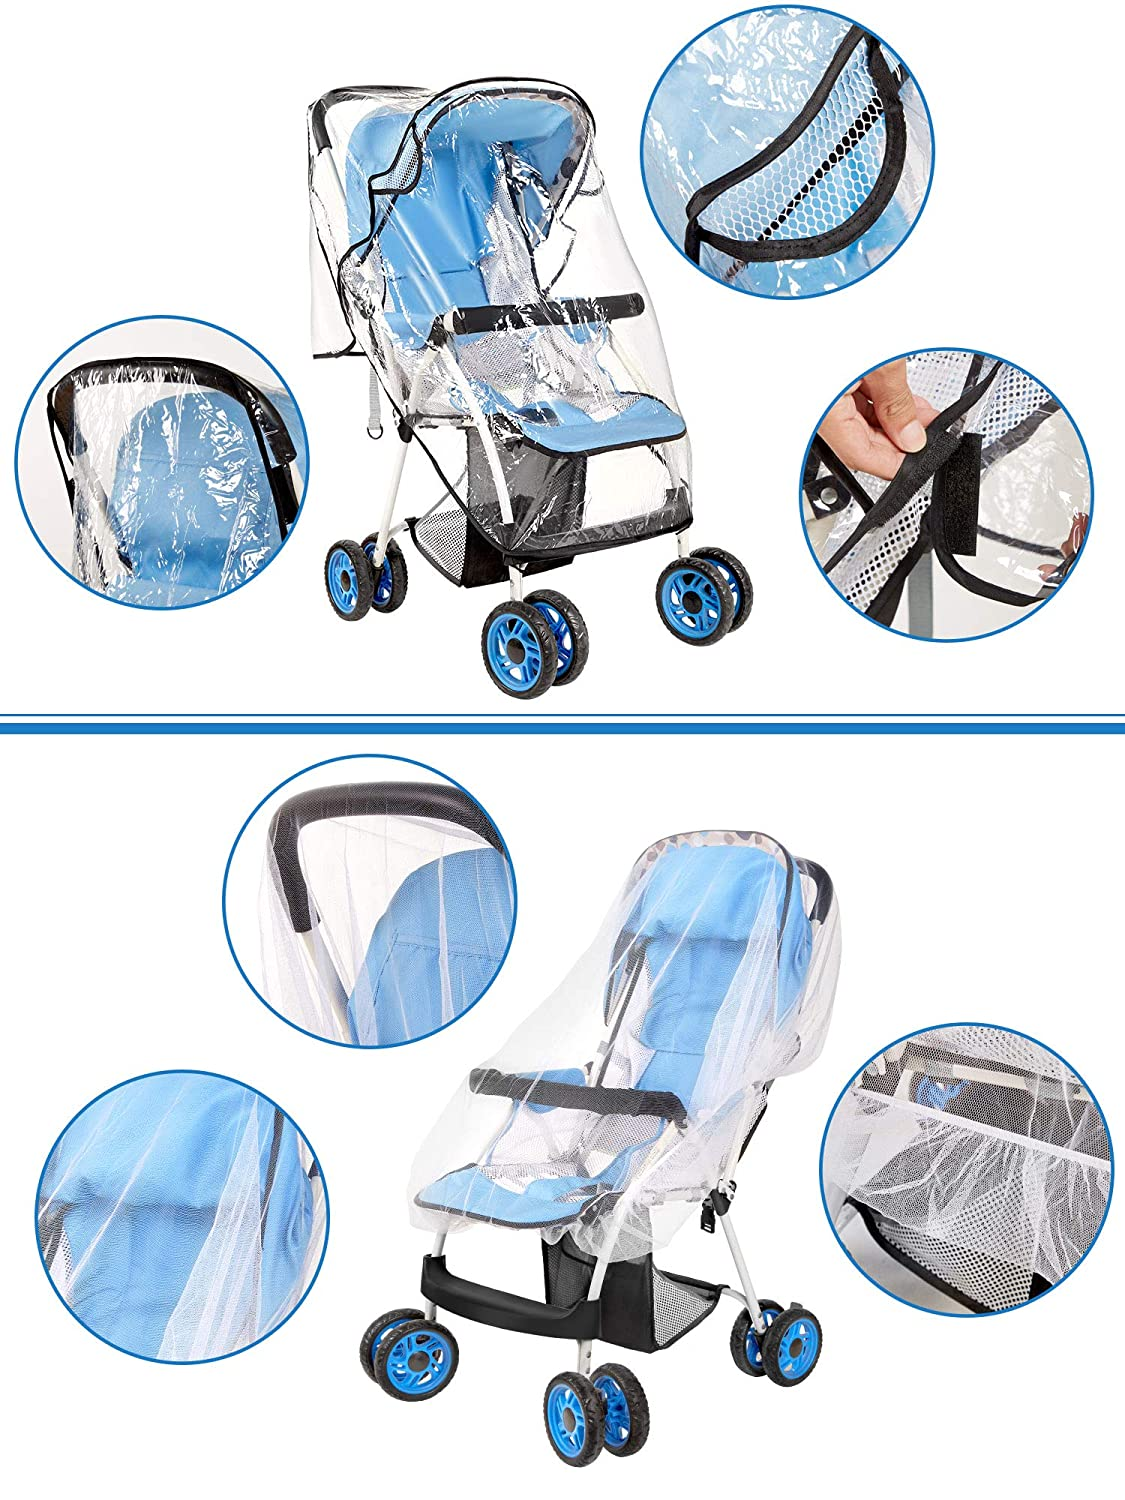 Protect Babies from Sun Snow Universal Stroller Rain Cover with Mosquito Net,Baby Mosquito Net and Mummy Bag Hook Rain Dust Wind